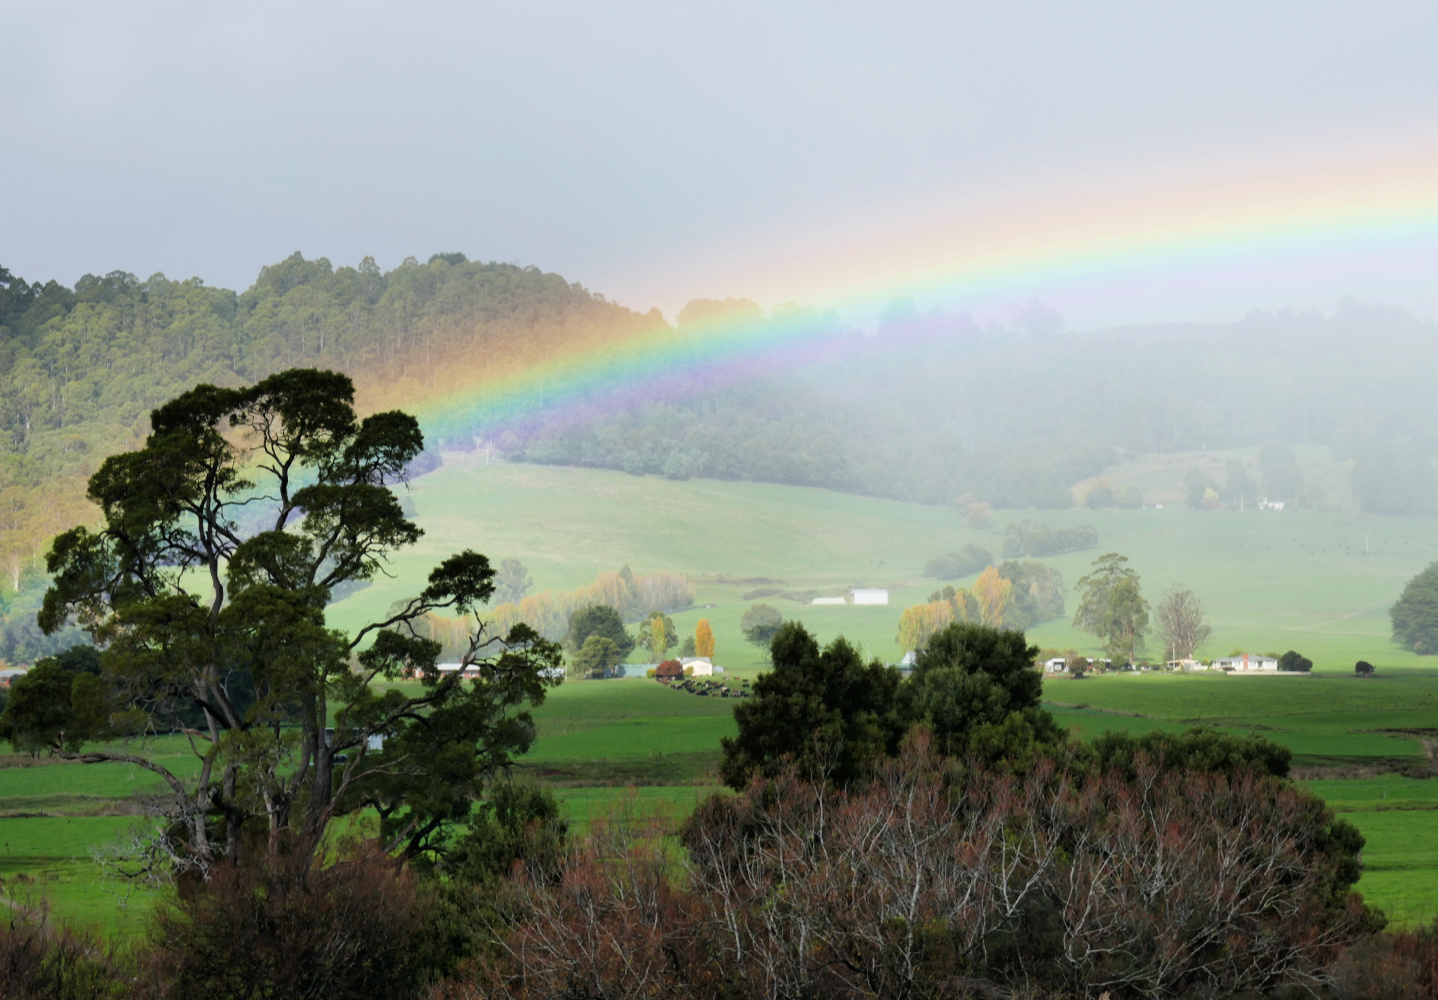 The beautiful Guns Plains Valley in NW Tasmania under an arching rainbow